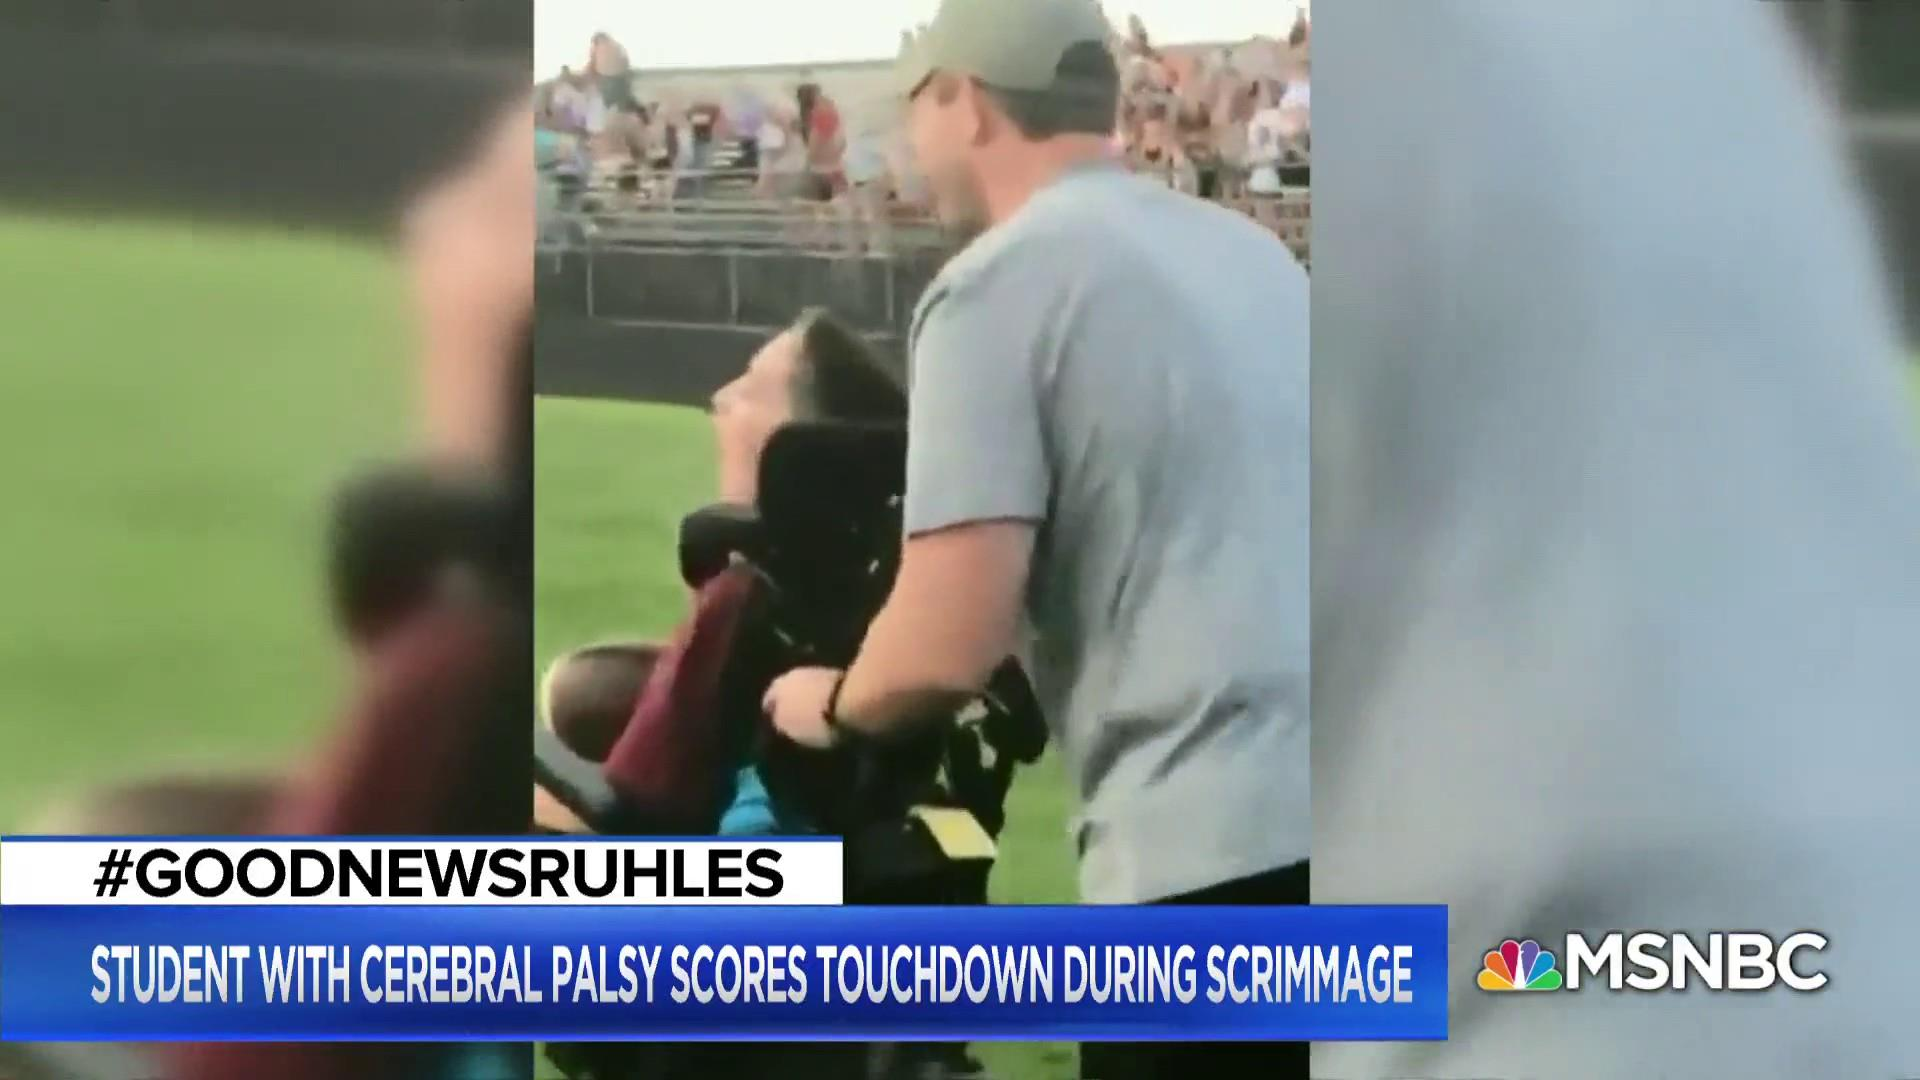 #GoodNewsRUHLES: Boy with cerebral palsy scores touchdown